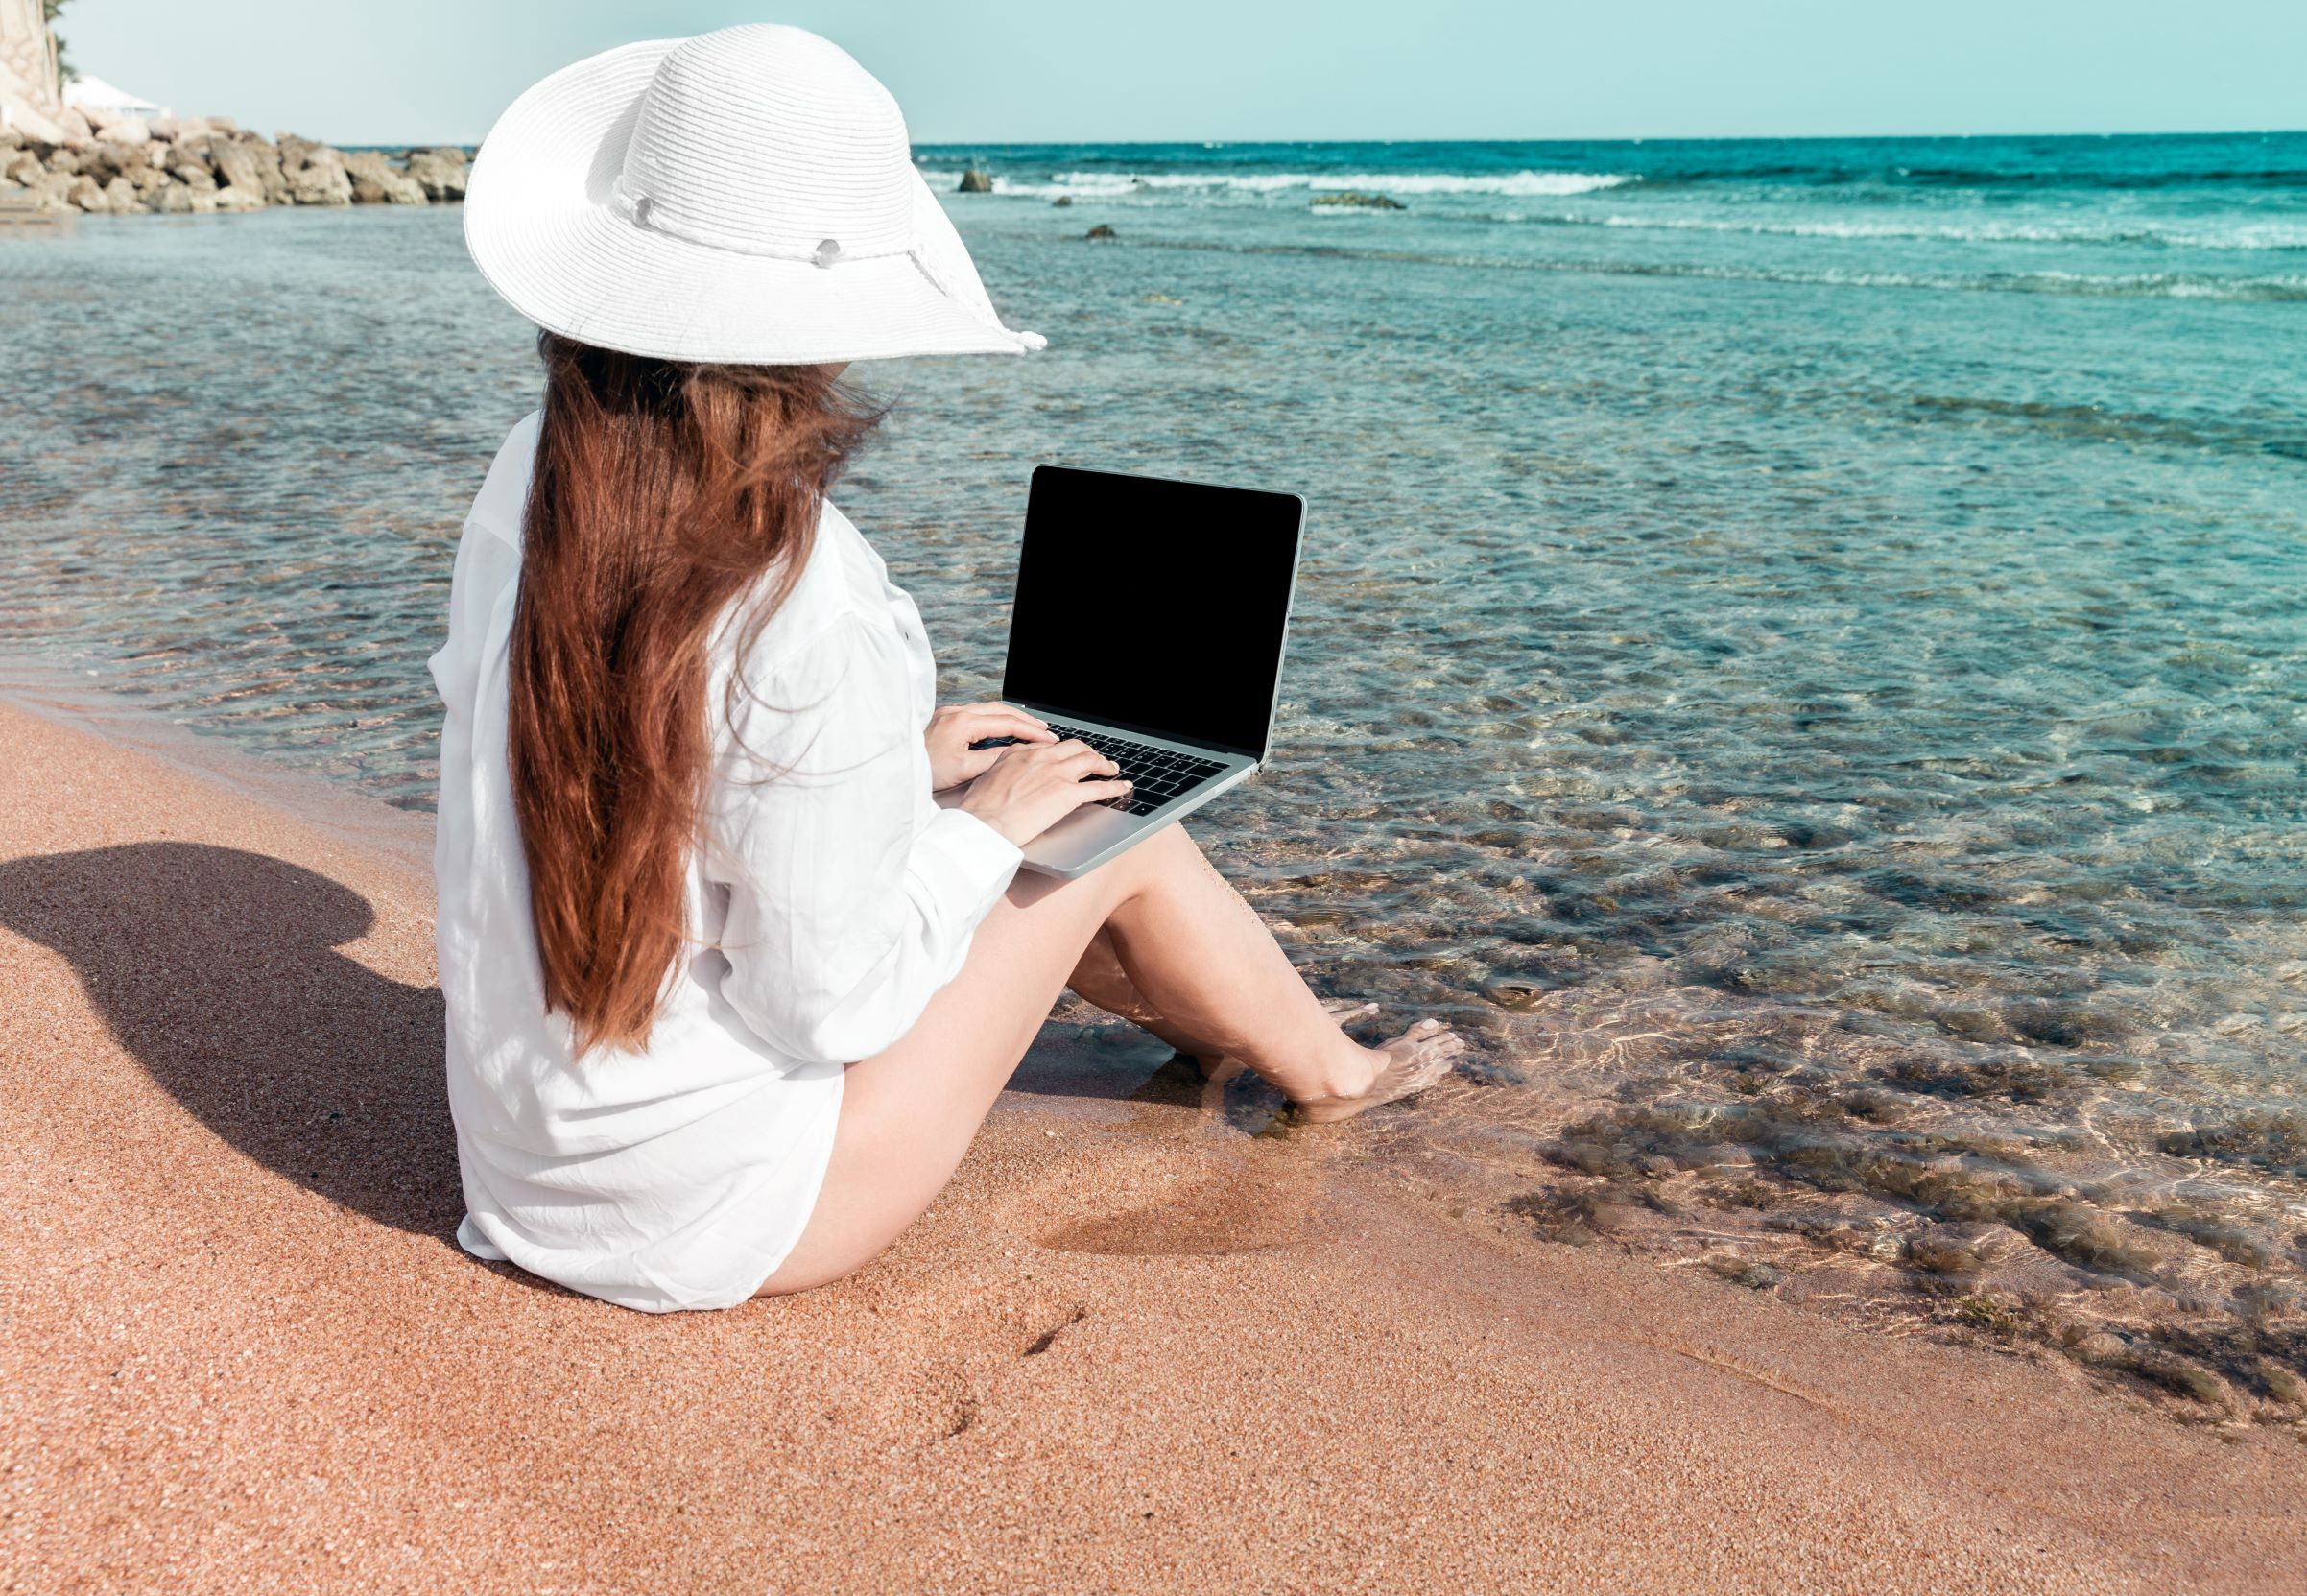 /digital-nomads-could-ease-economic-turmoil-in-the-tourism-industry-5w5w31er feature image